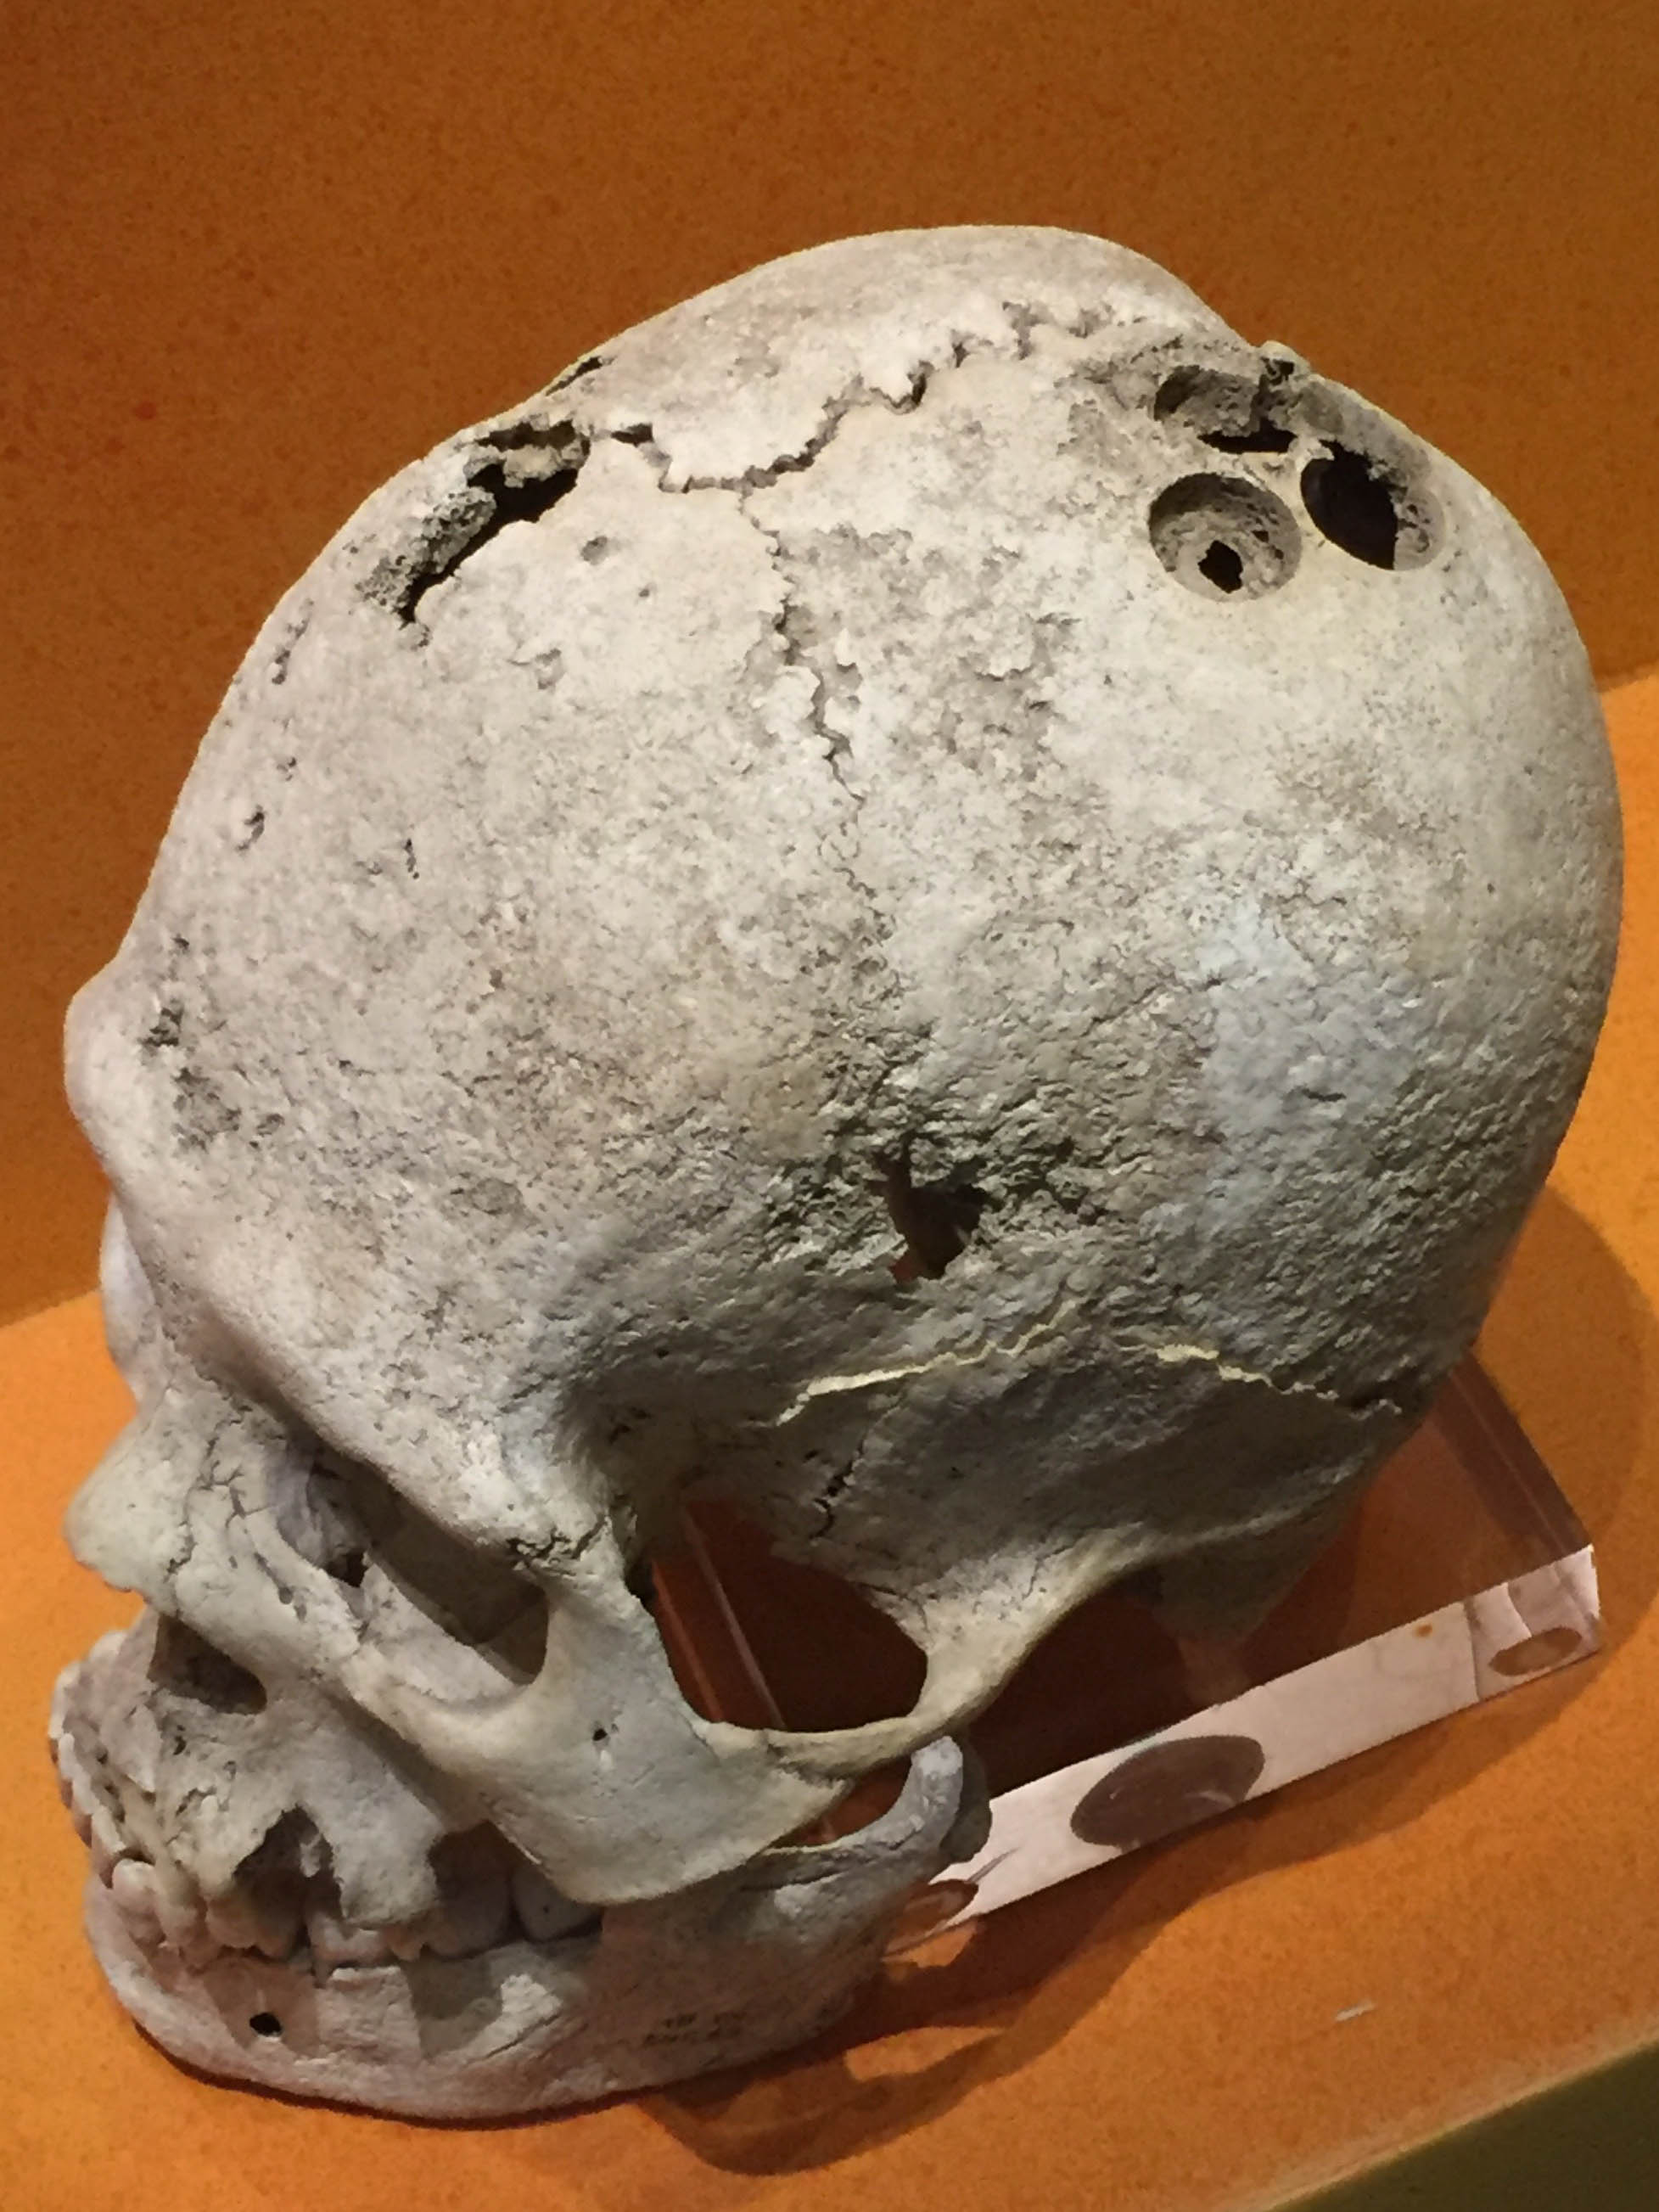 Zapotecs were believed to be highly skilled in many areas, including brain surgery. Apparently this person needed a lot of work.